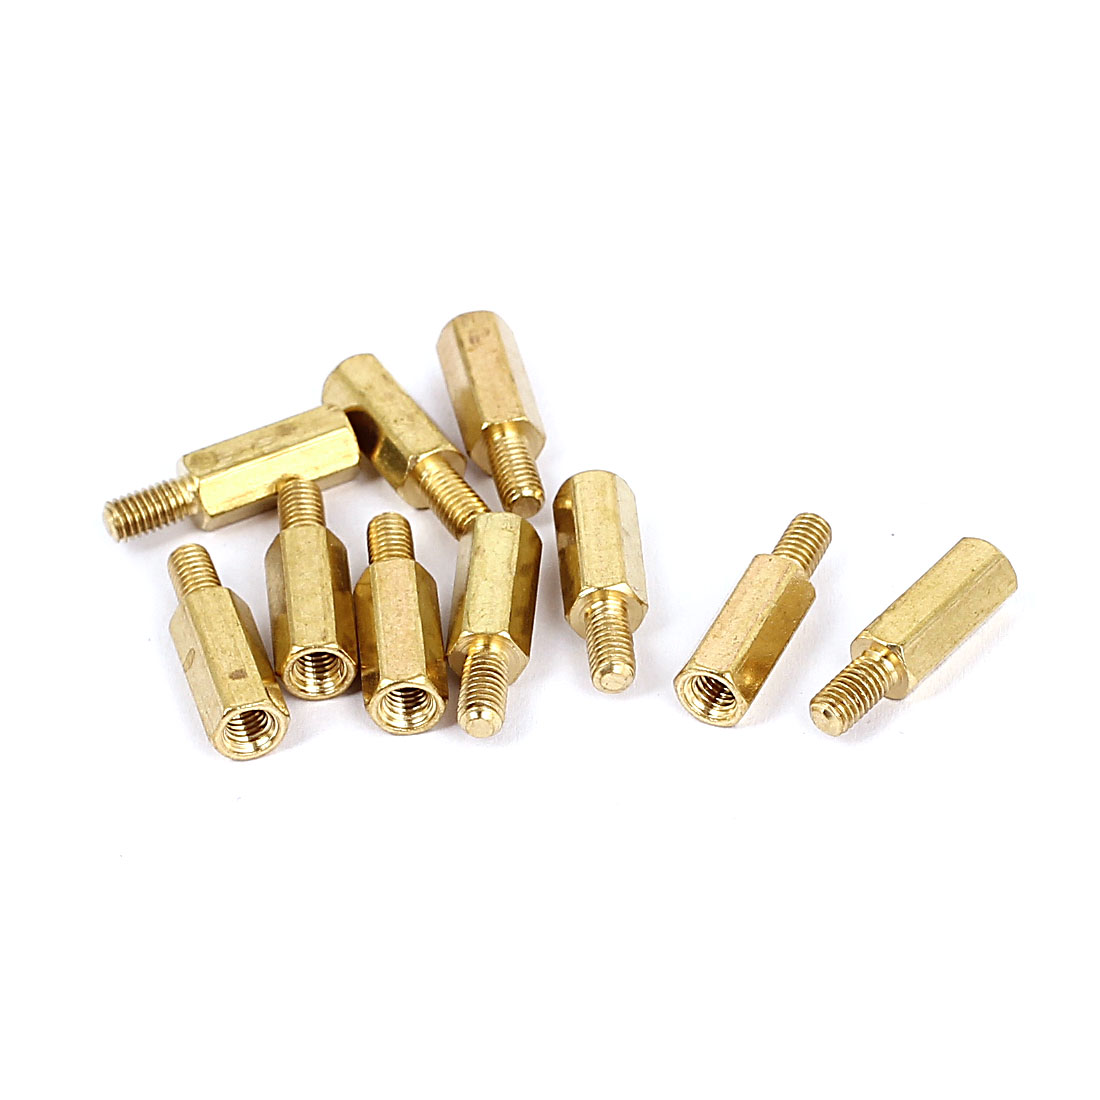 M3x11mm+6mm Male to Female Thread 0.5mm Pitch Brass Hex Standoff Spacer 10Pcs